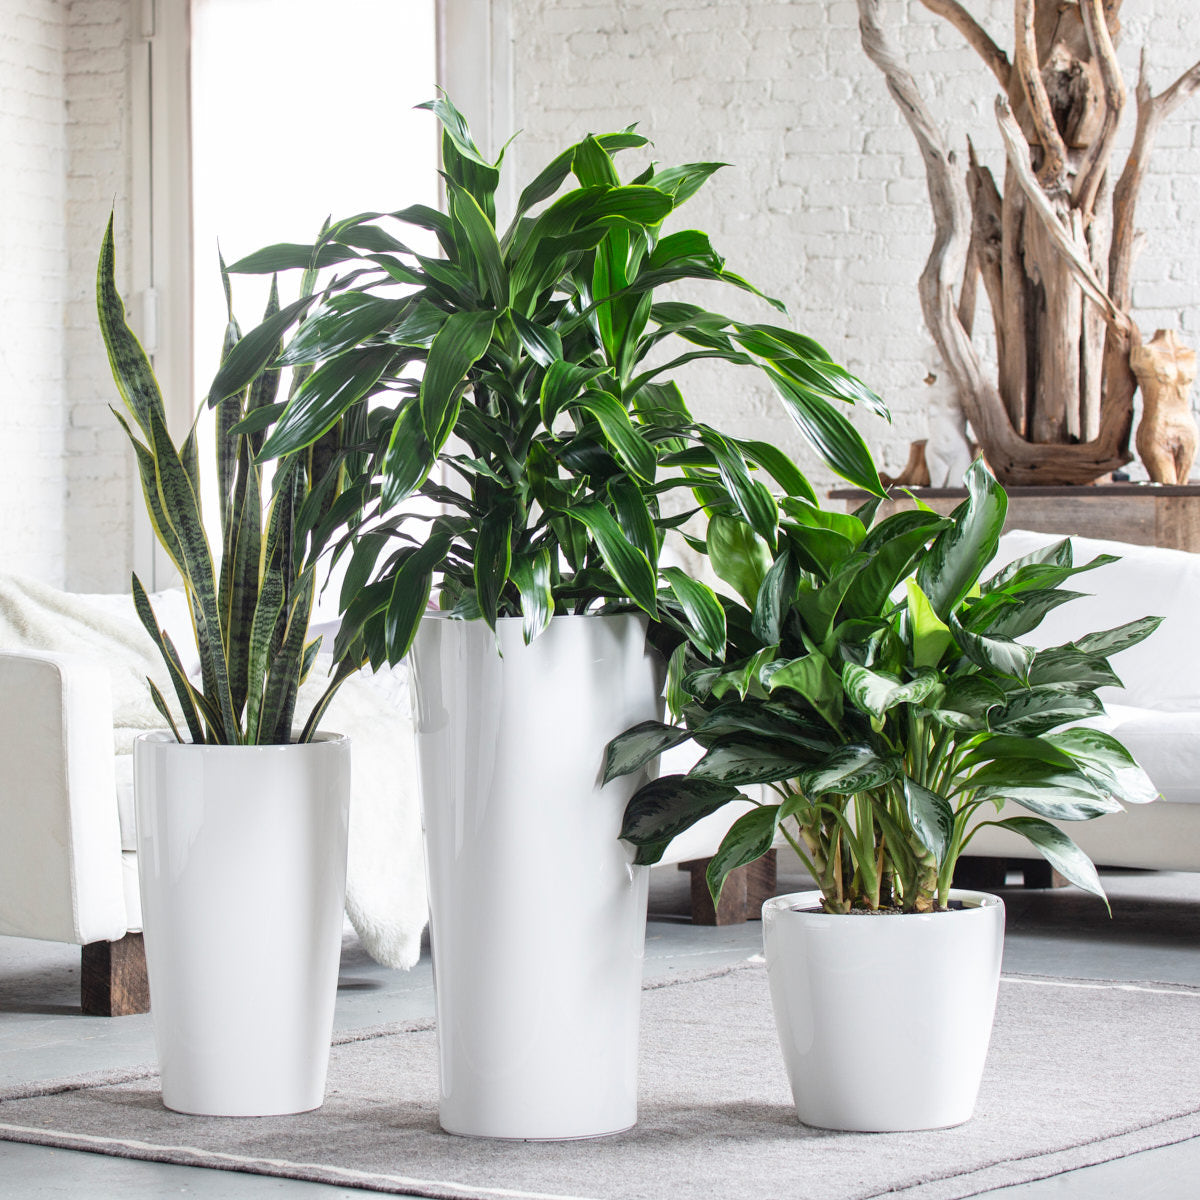 Tribeca Plant Bundle - White | 3 Plants In The Bundle - My City Plants